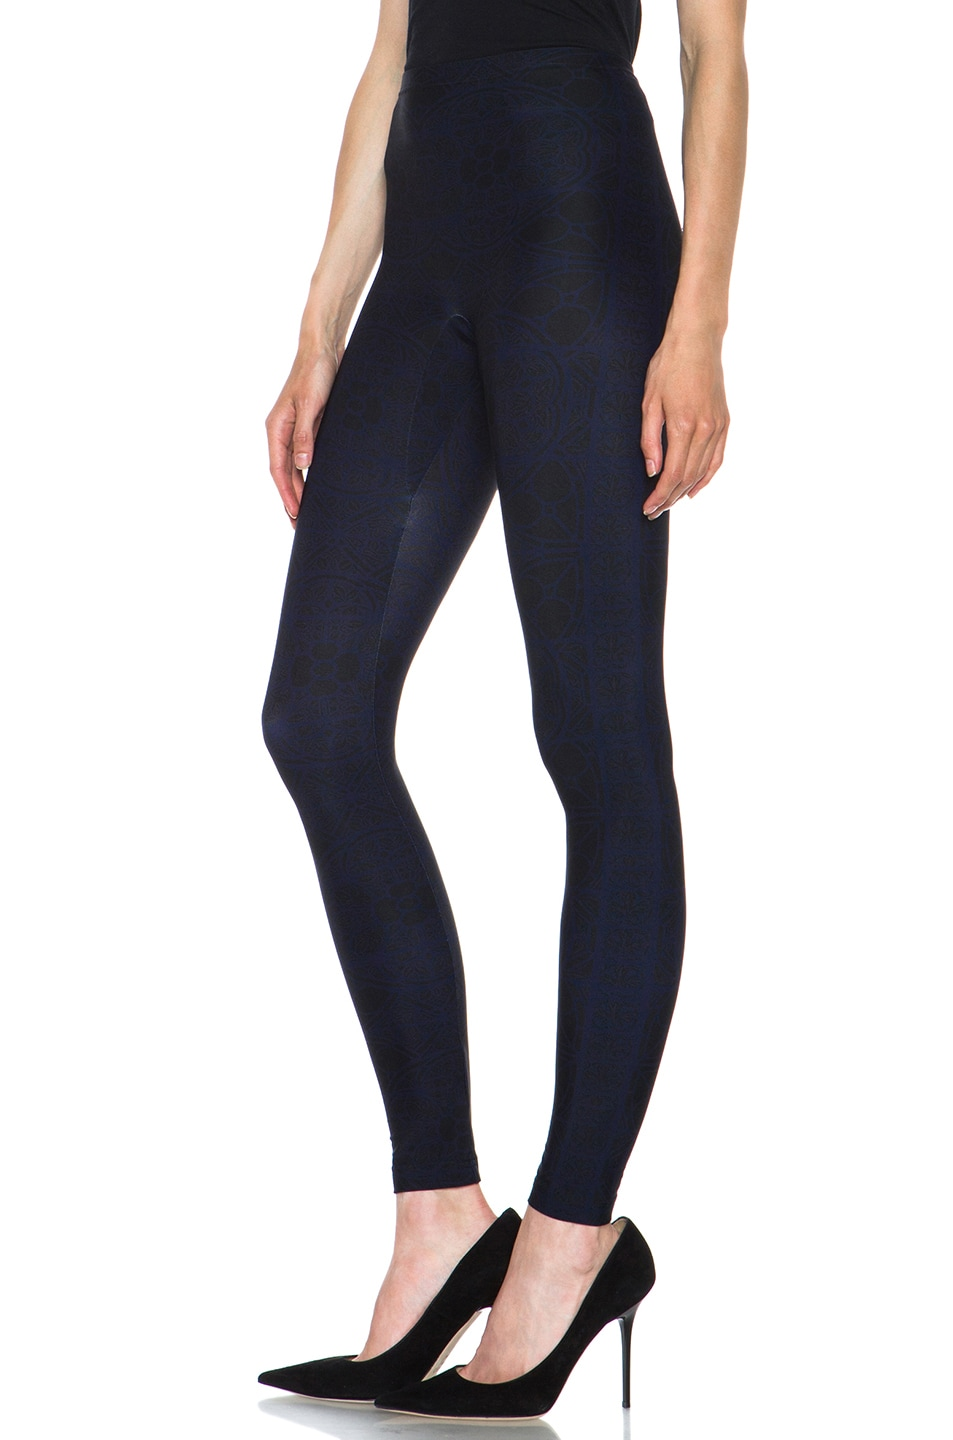 Image 2 of Alexander McQueen Stained Glass Print Nylon-Blend Legging in Navy & Black